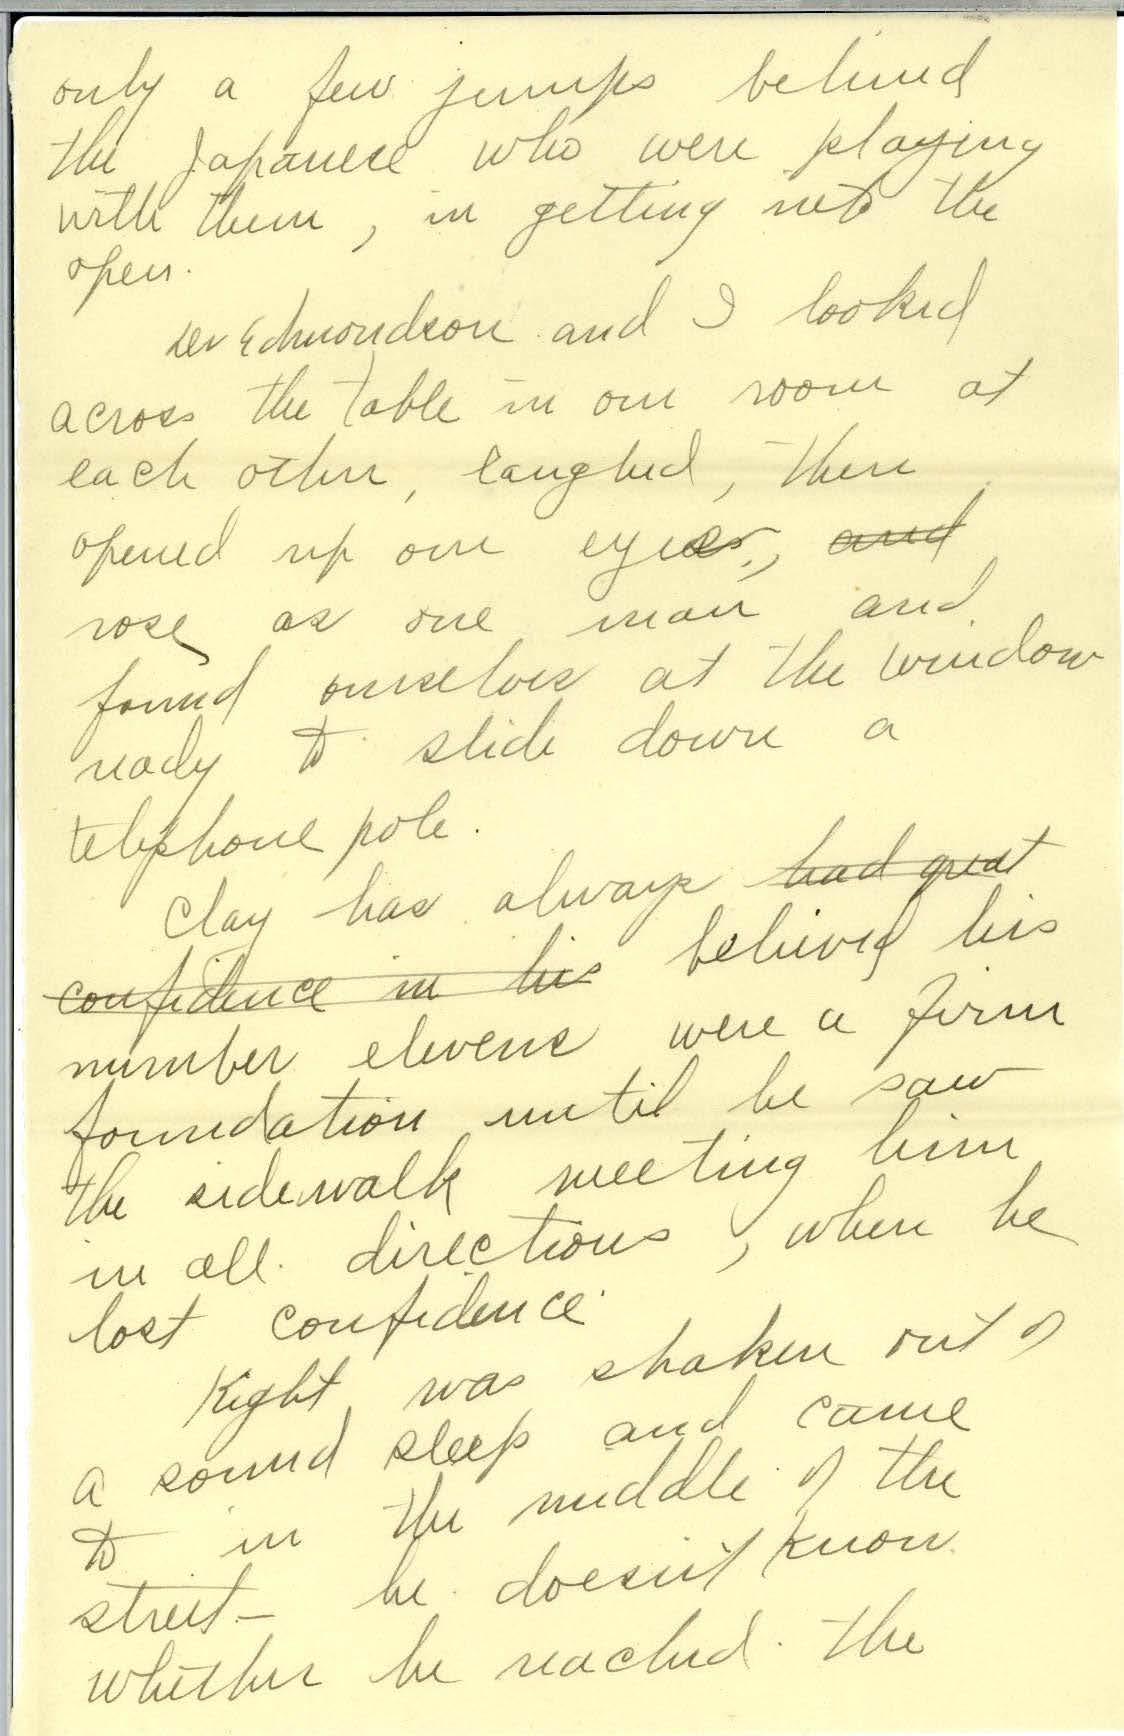 Scan of page 3 of Edna Hatfield's April 30, 1922 letter to Frank R. Elliot - written in cursive handwriting.